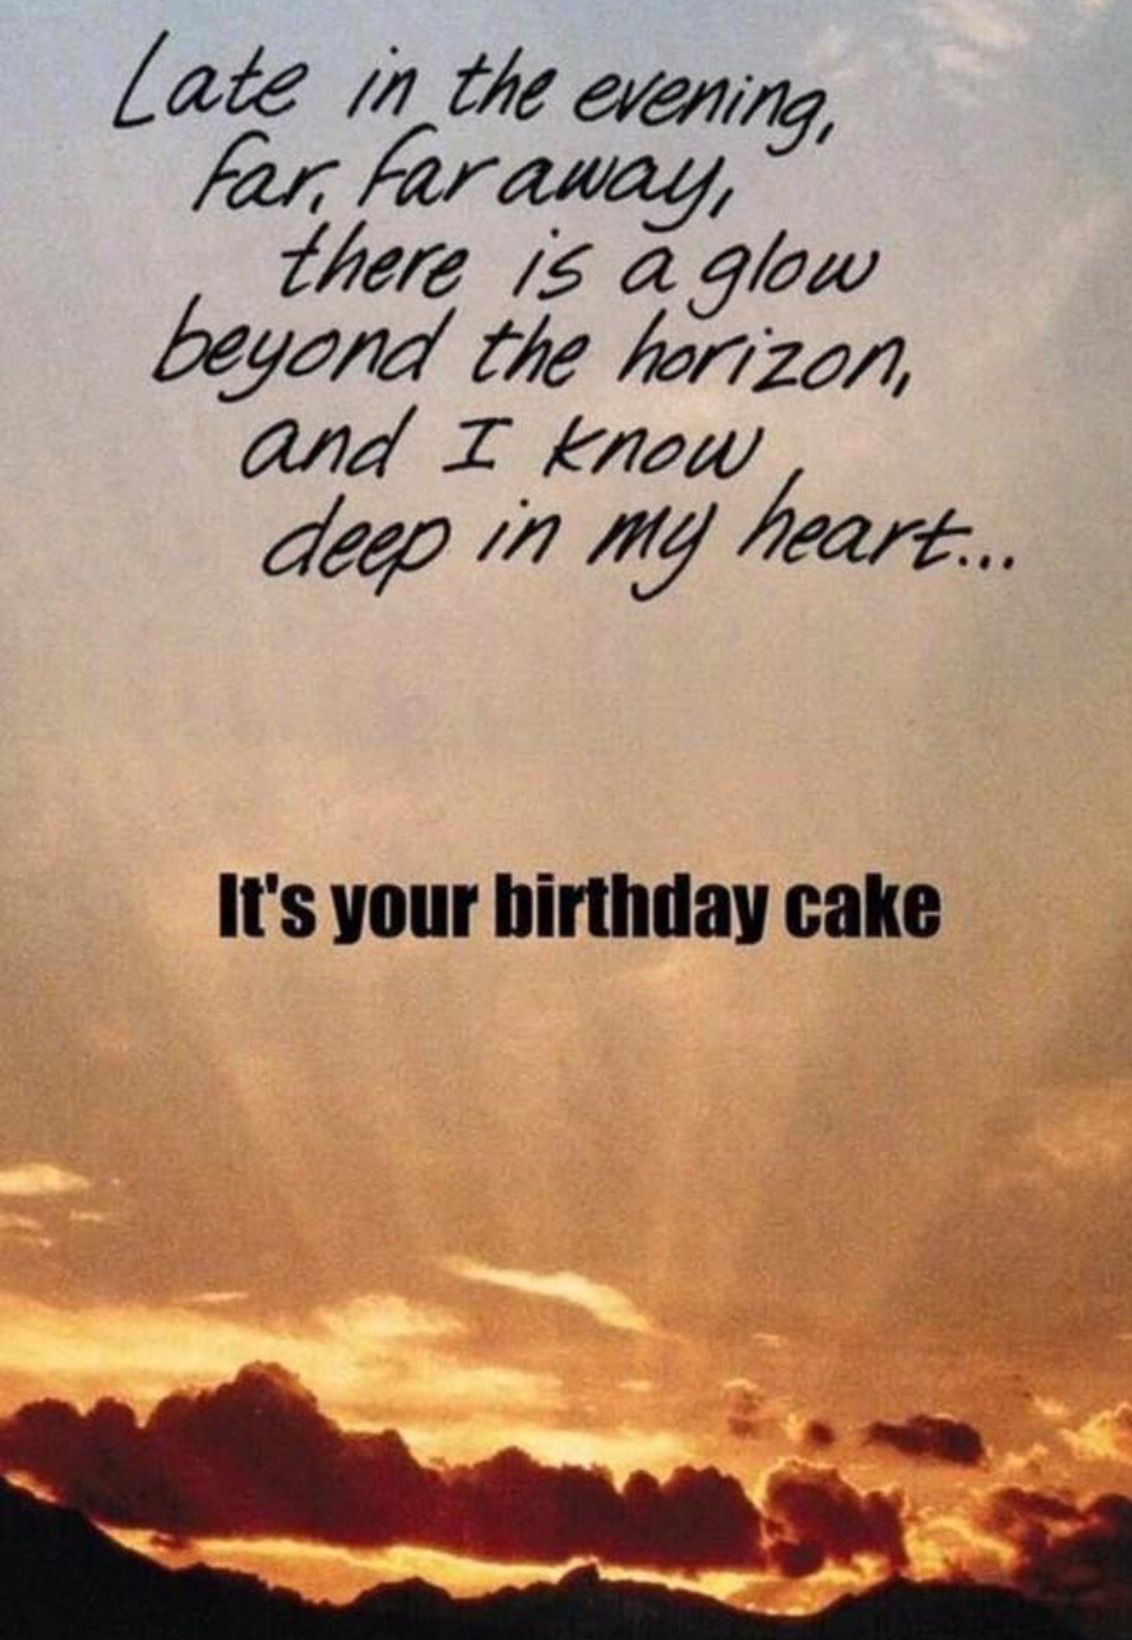 Pin by Kathy Pollock on IT'S YOUR BIRTHDAY Happy